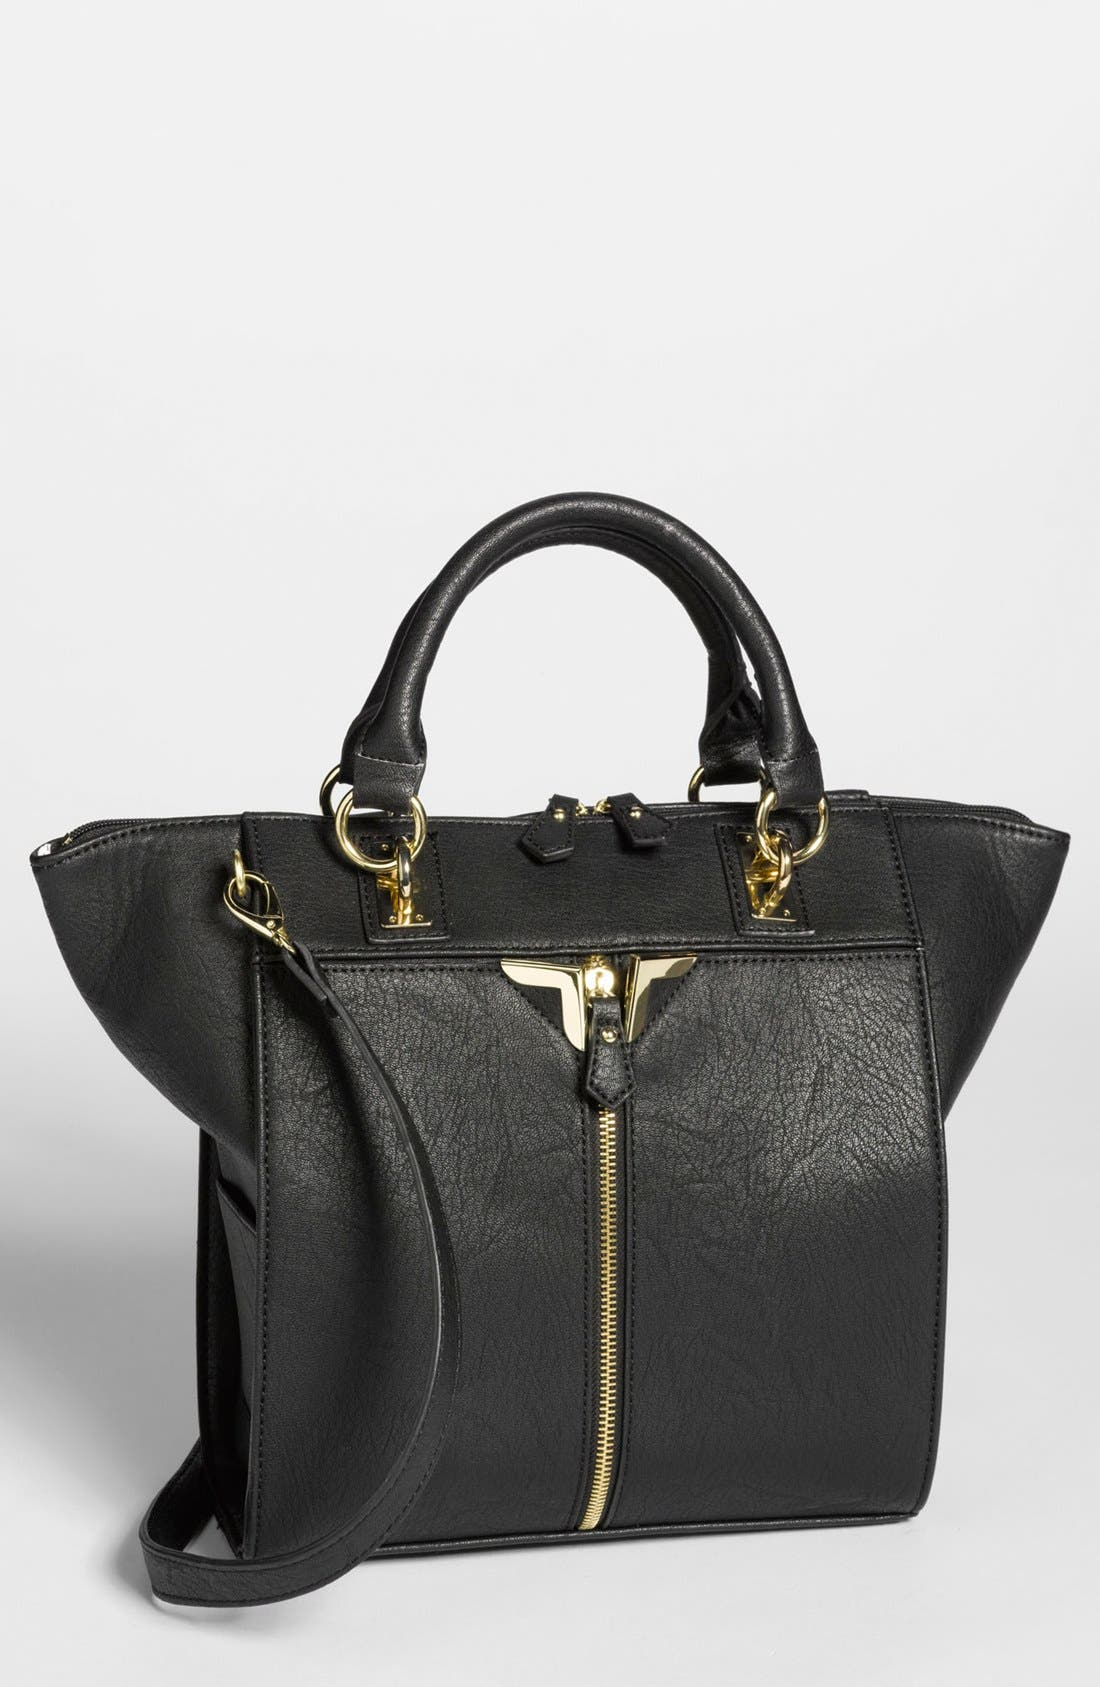 Alternate Image 1 Selected - Danielle Nicole 'Alexa' Faux Leather Satchel, Medium